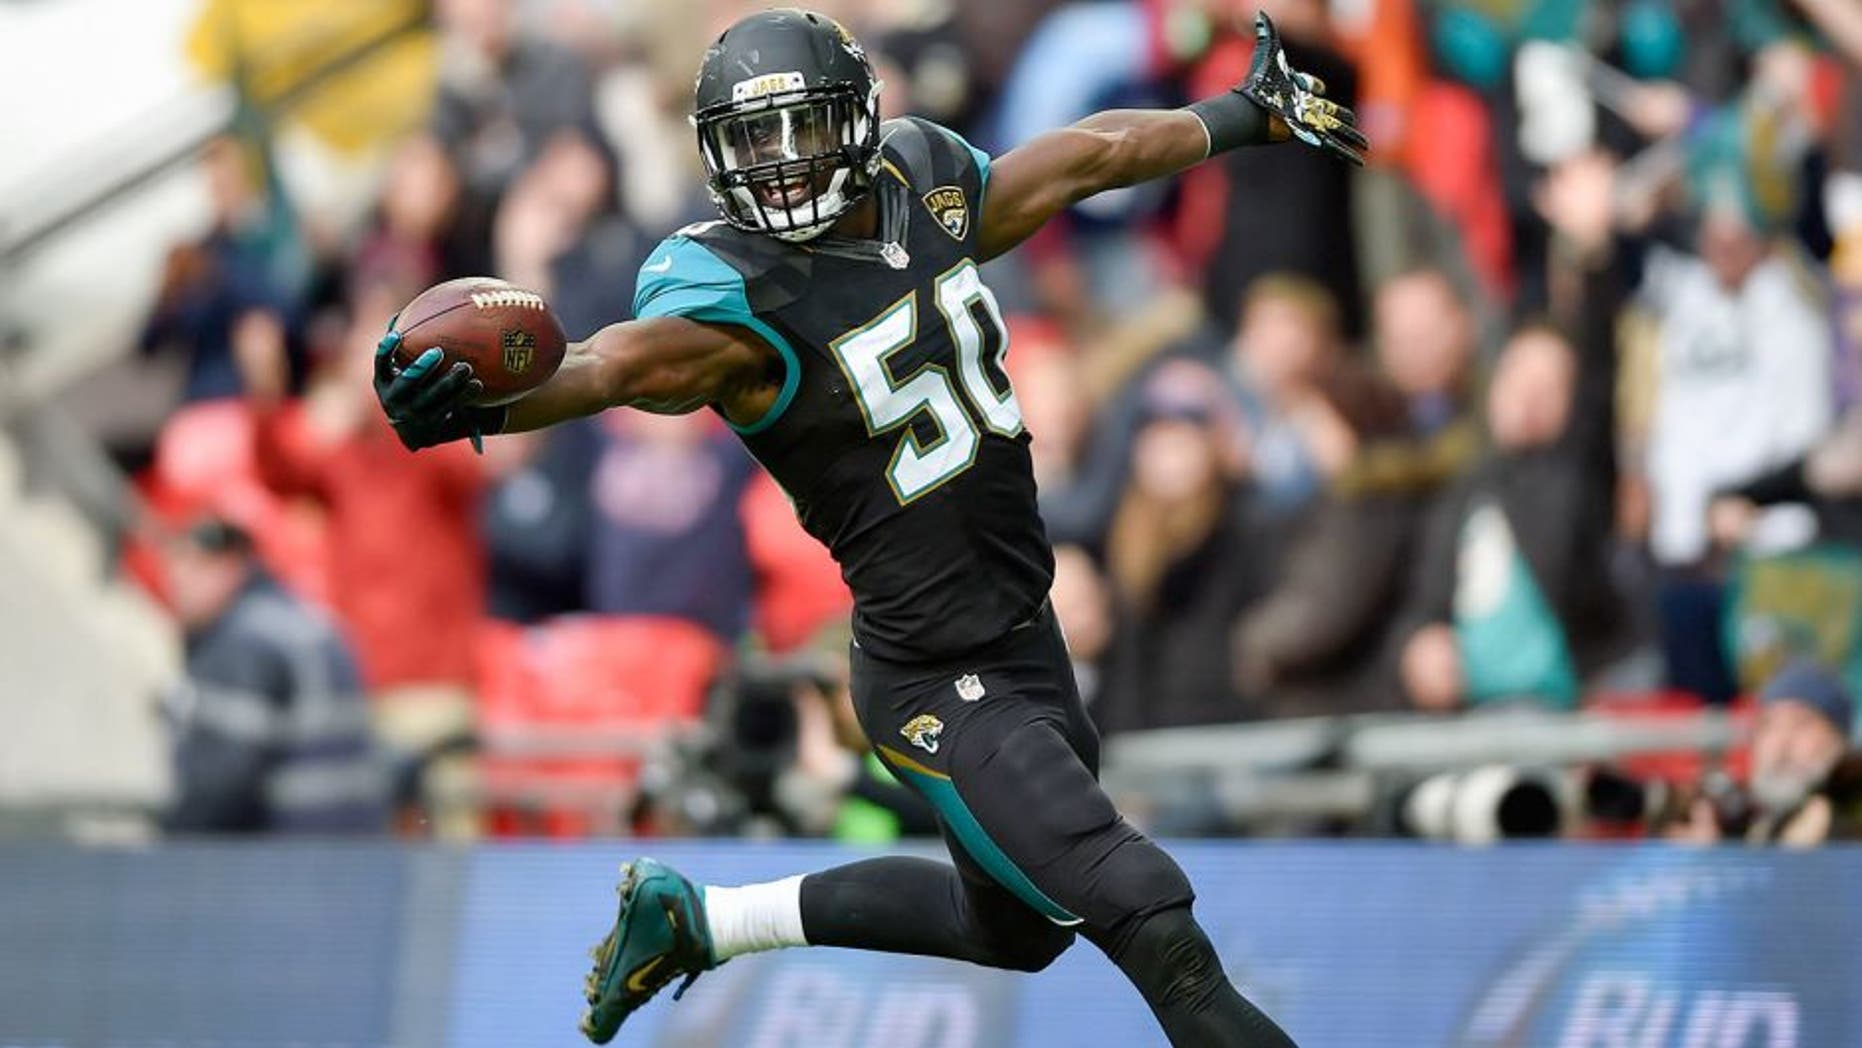 Oct 25, 2015; London, United Kingdom; Jacksonville Jaguars outside linebacker Telvin Smith (50) reacts after scoring a touchdown during the first half of the game against the Buffalo Bills at Wembley Stadium. Mandatory Credit: Steve Flynn-USA TODAY Sports